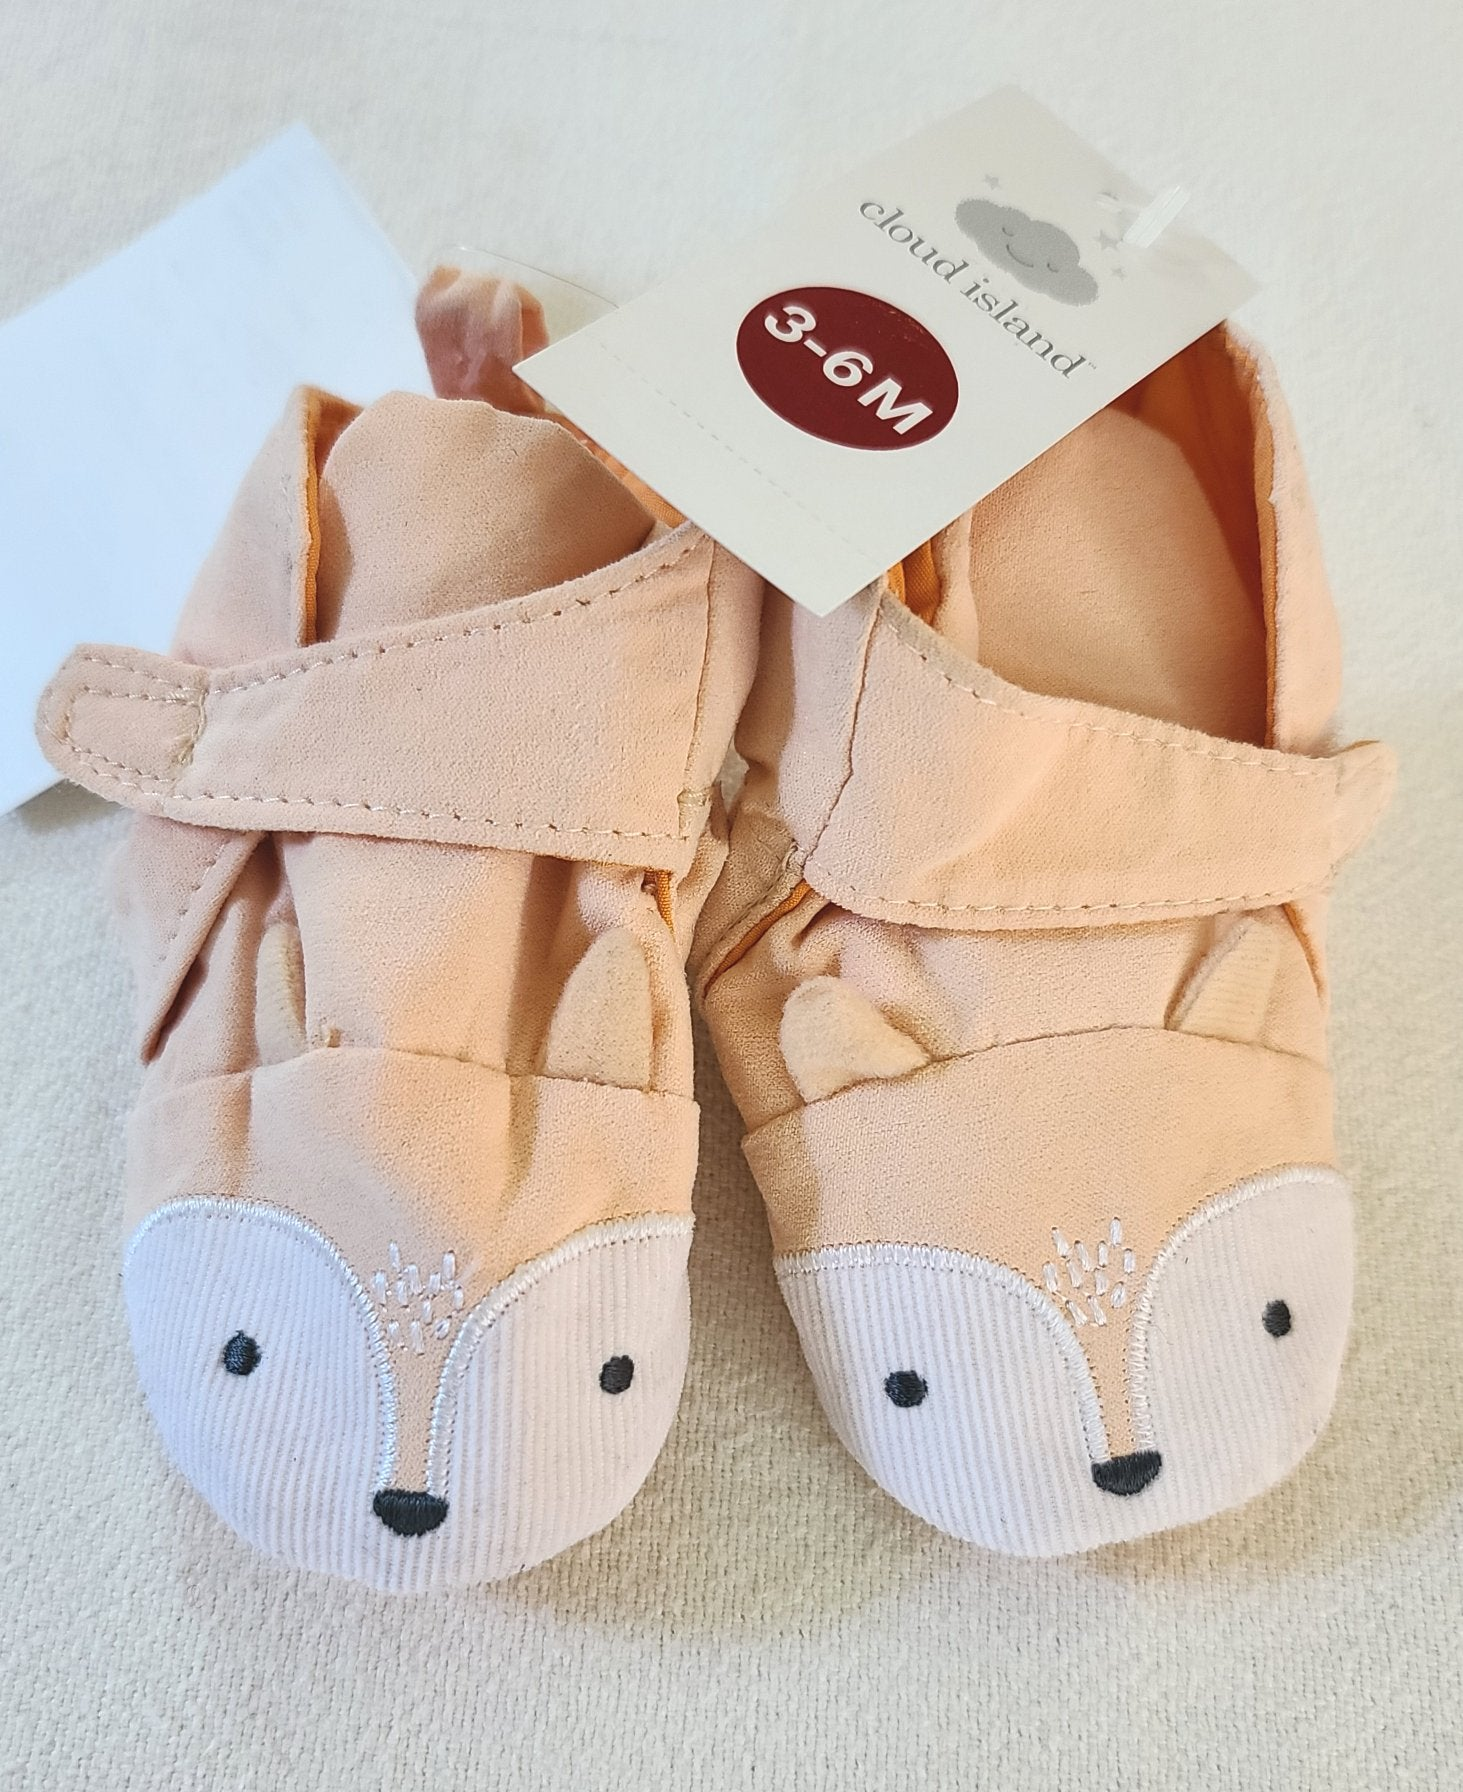 *NWT* CLOUD ISLAND Fox booties, Infant girls Size 3-6 months